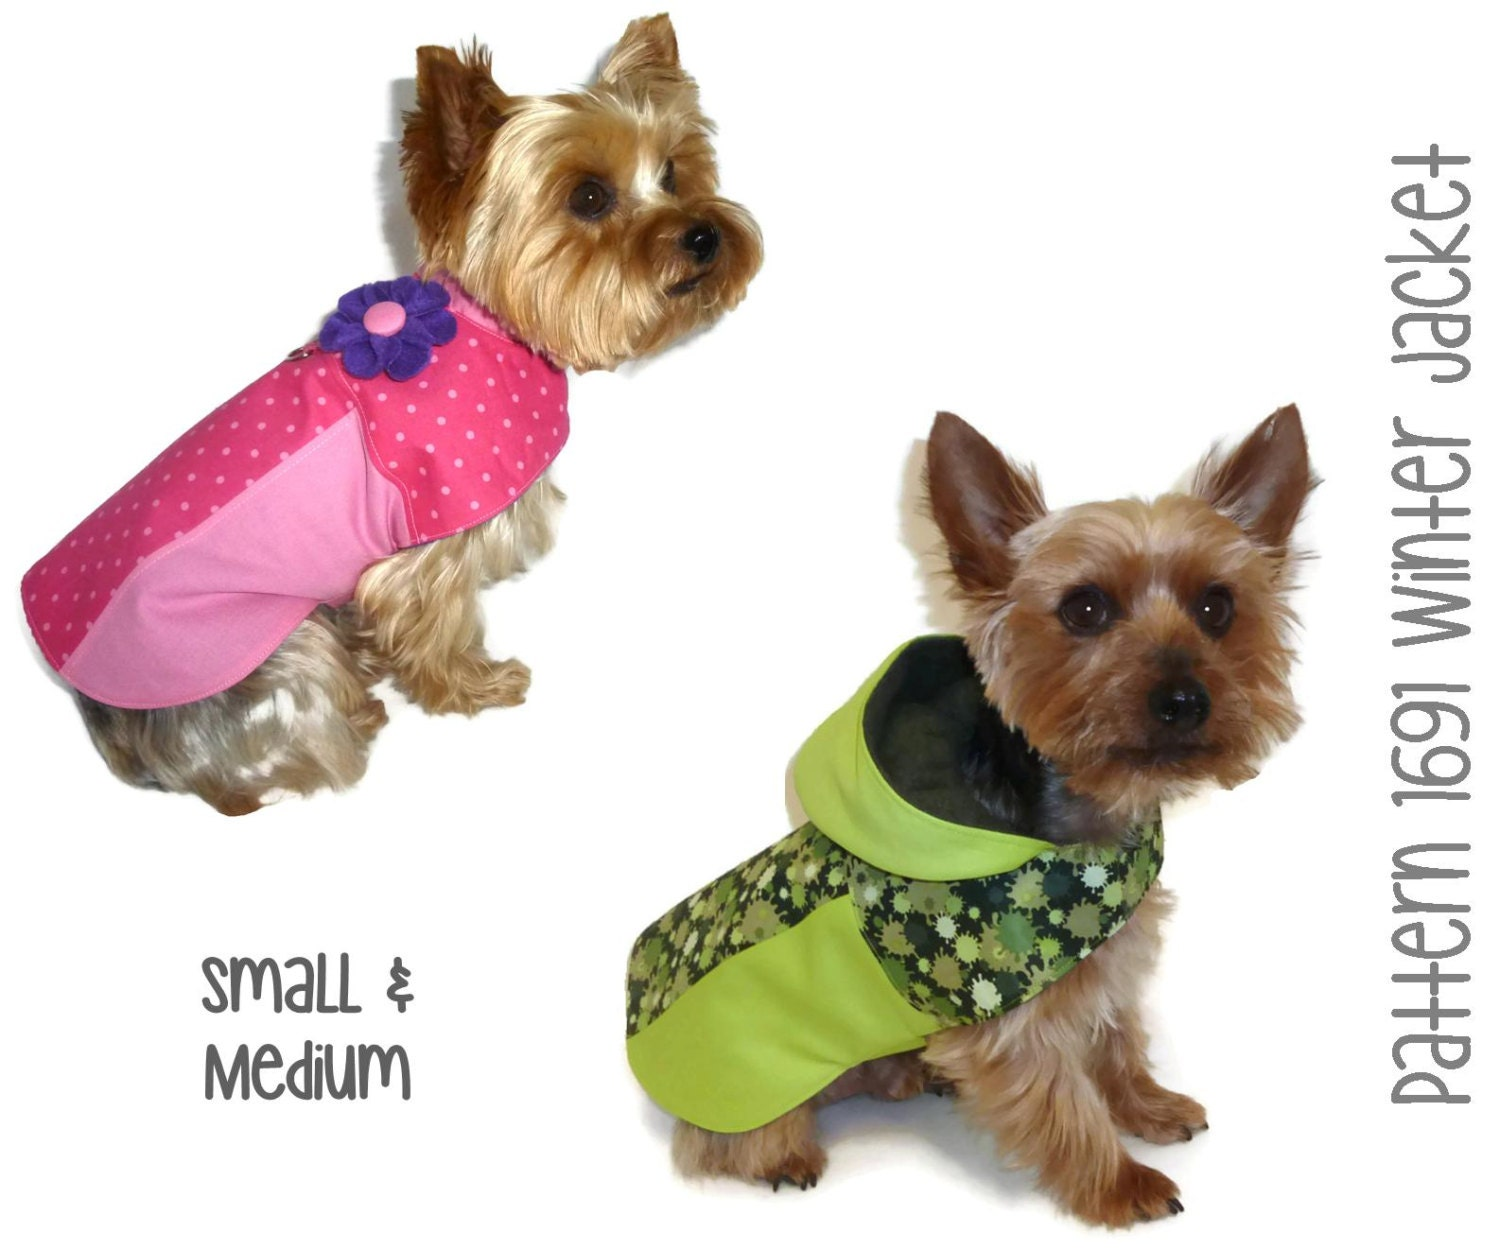 dog coat template - winter dog jacket pattern 1691 small medium by